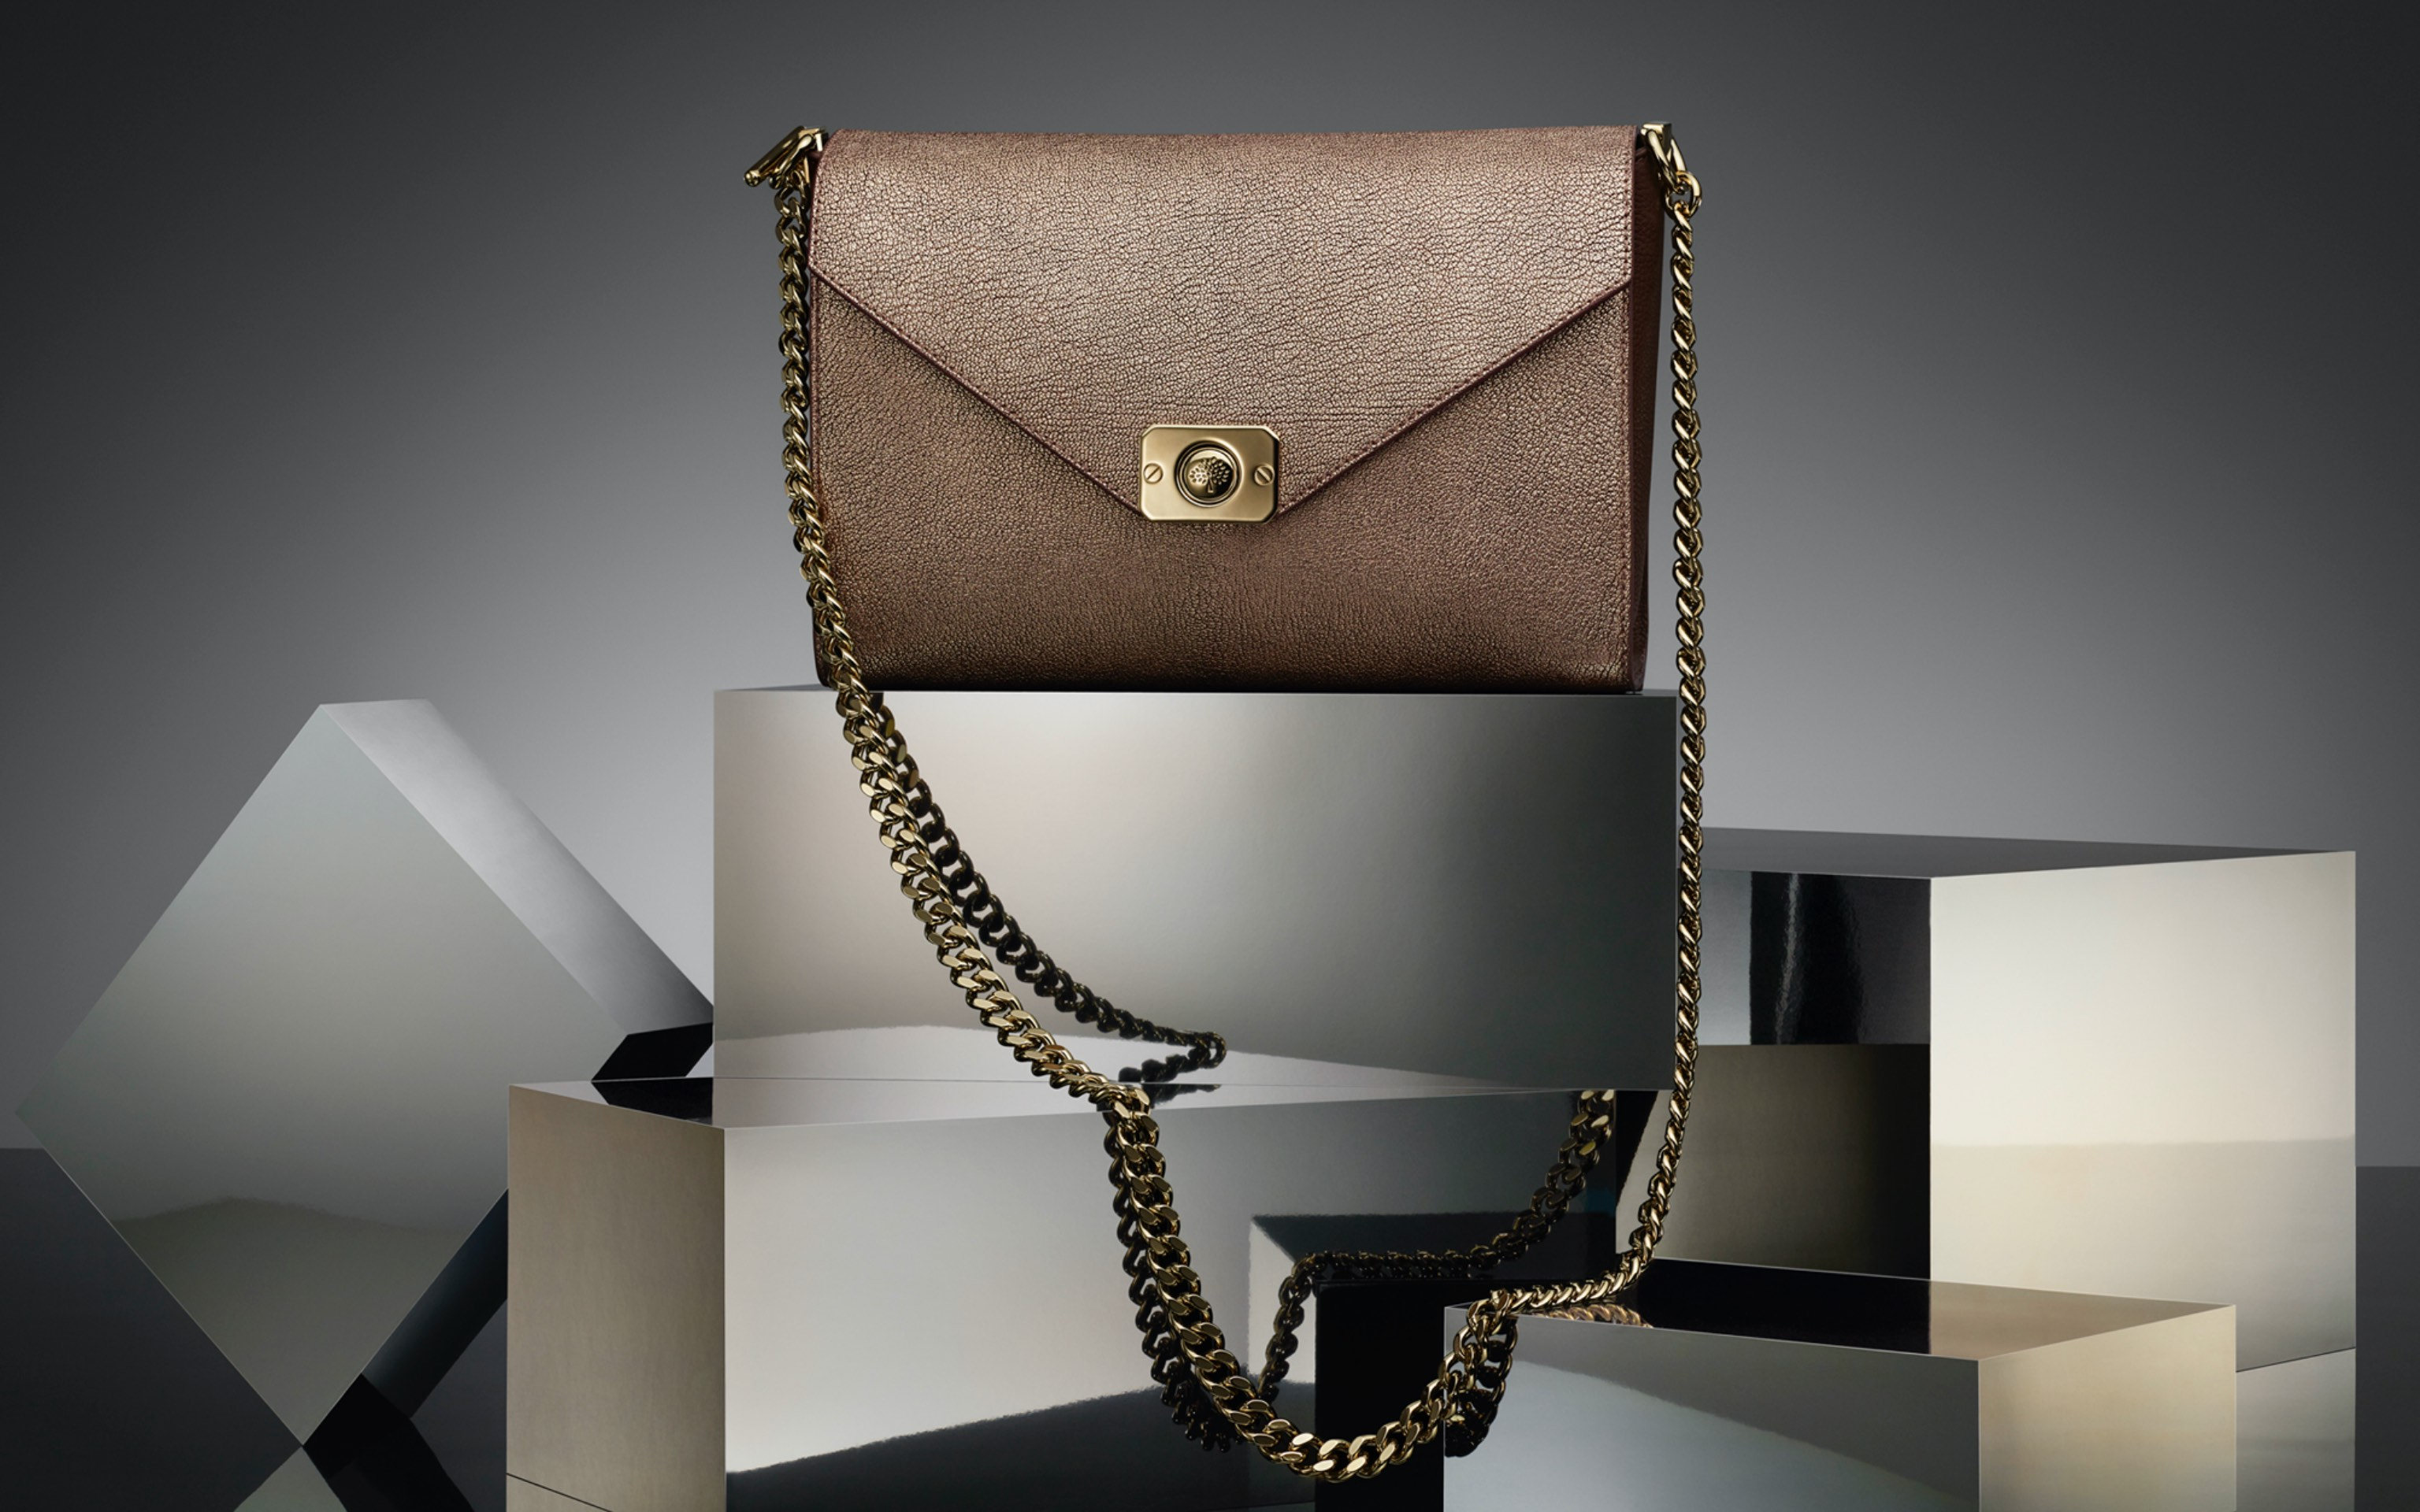 creative commercial shot of bronze colour bag in grey reflecting scene